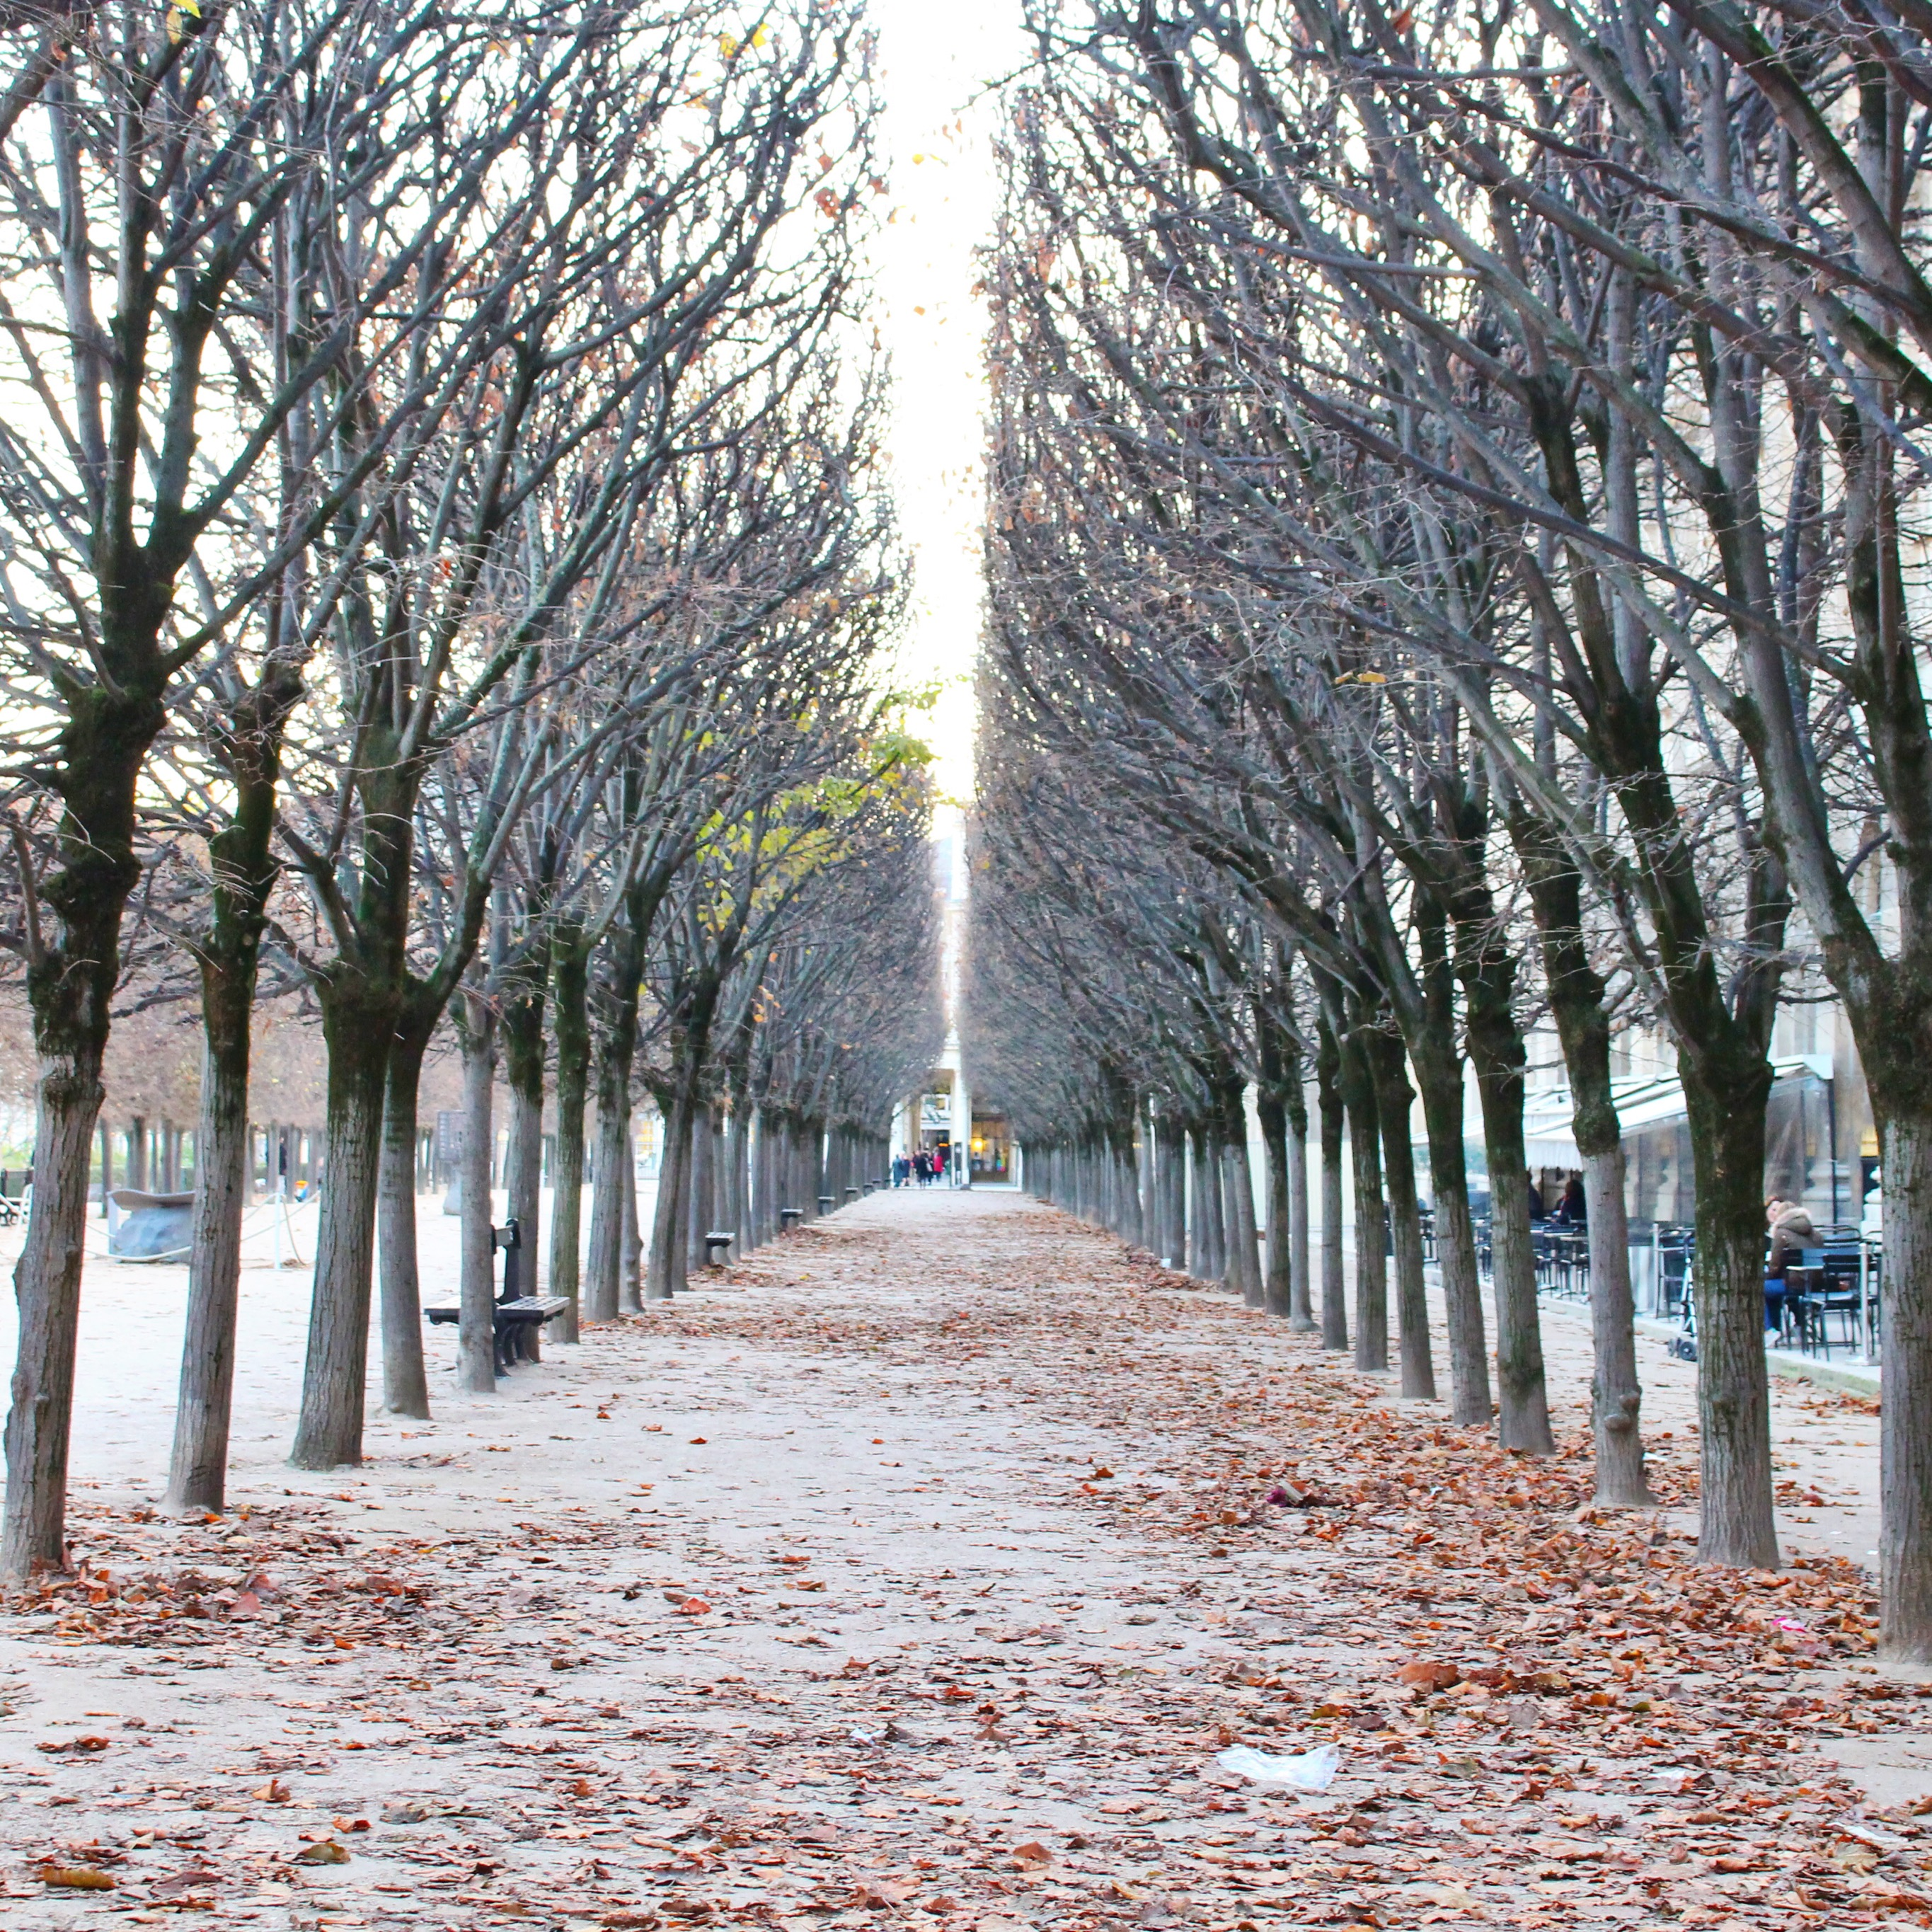 Falling leaves at the Palais Royal. Interested in an internship with HiP Paris Blog? Learn more at http://haveninparis.com/careers.php.